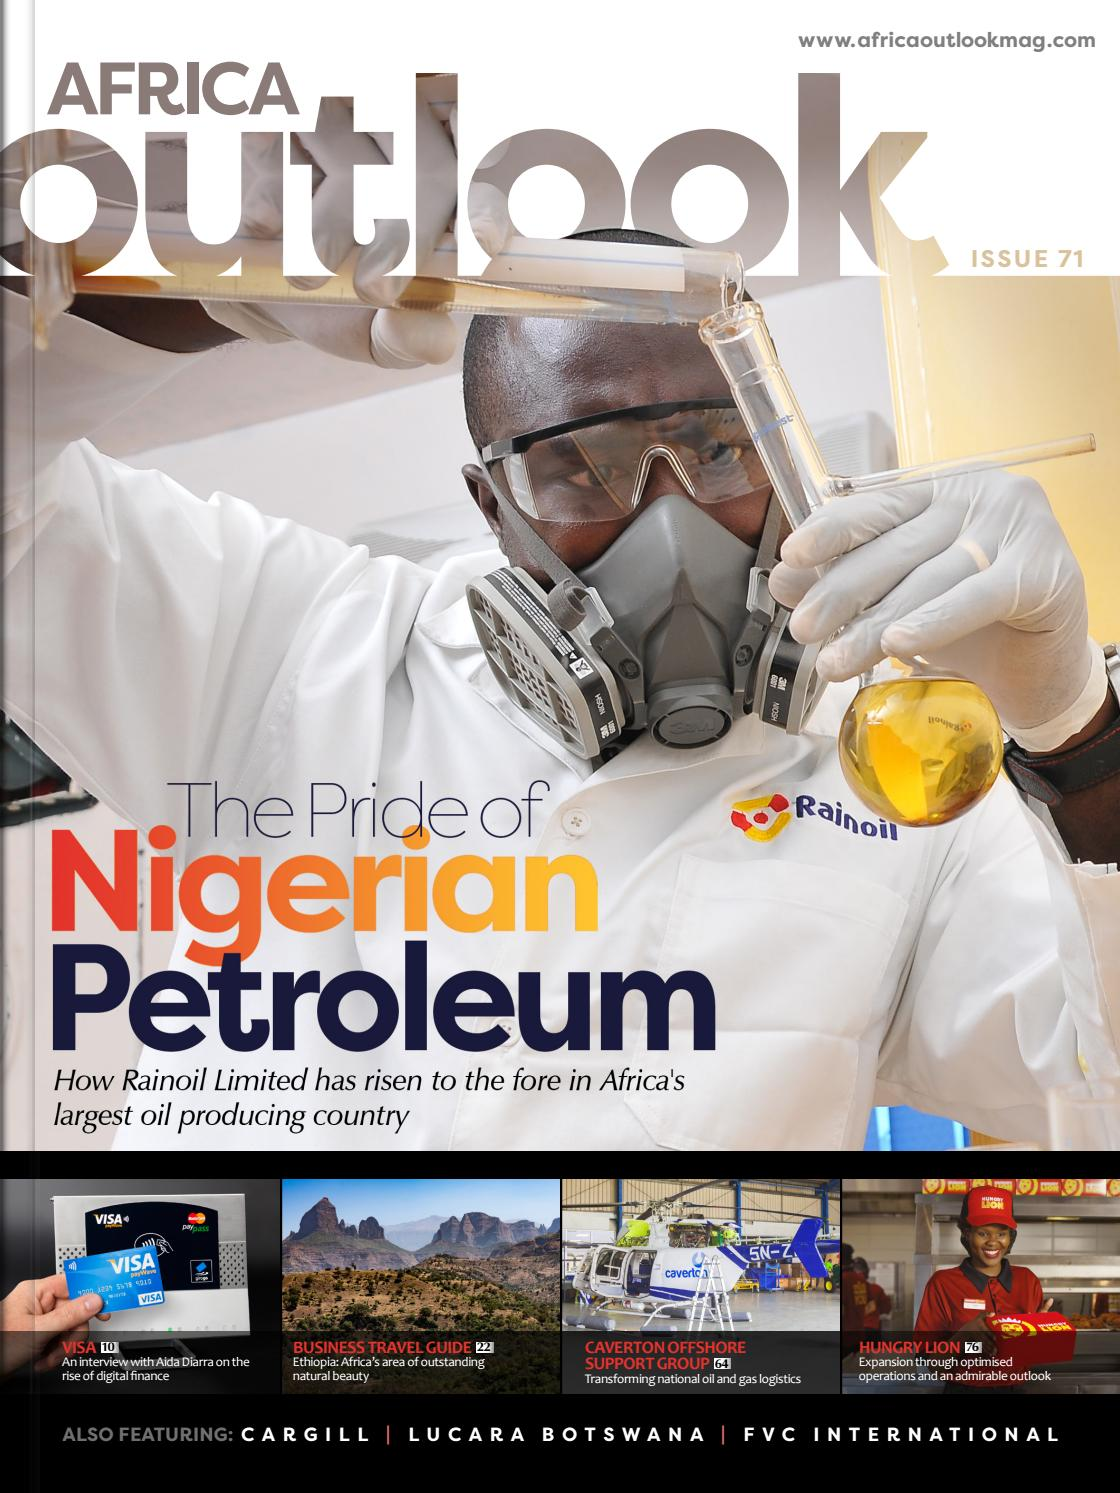 Africa Outlook - Issue 71 by Outlook Publishing - issuu